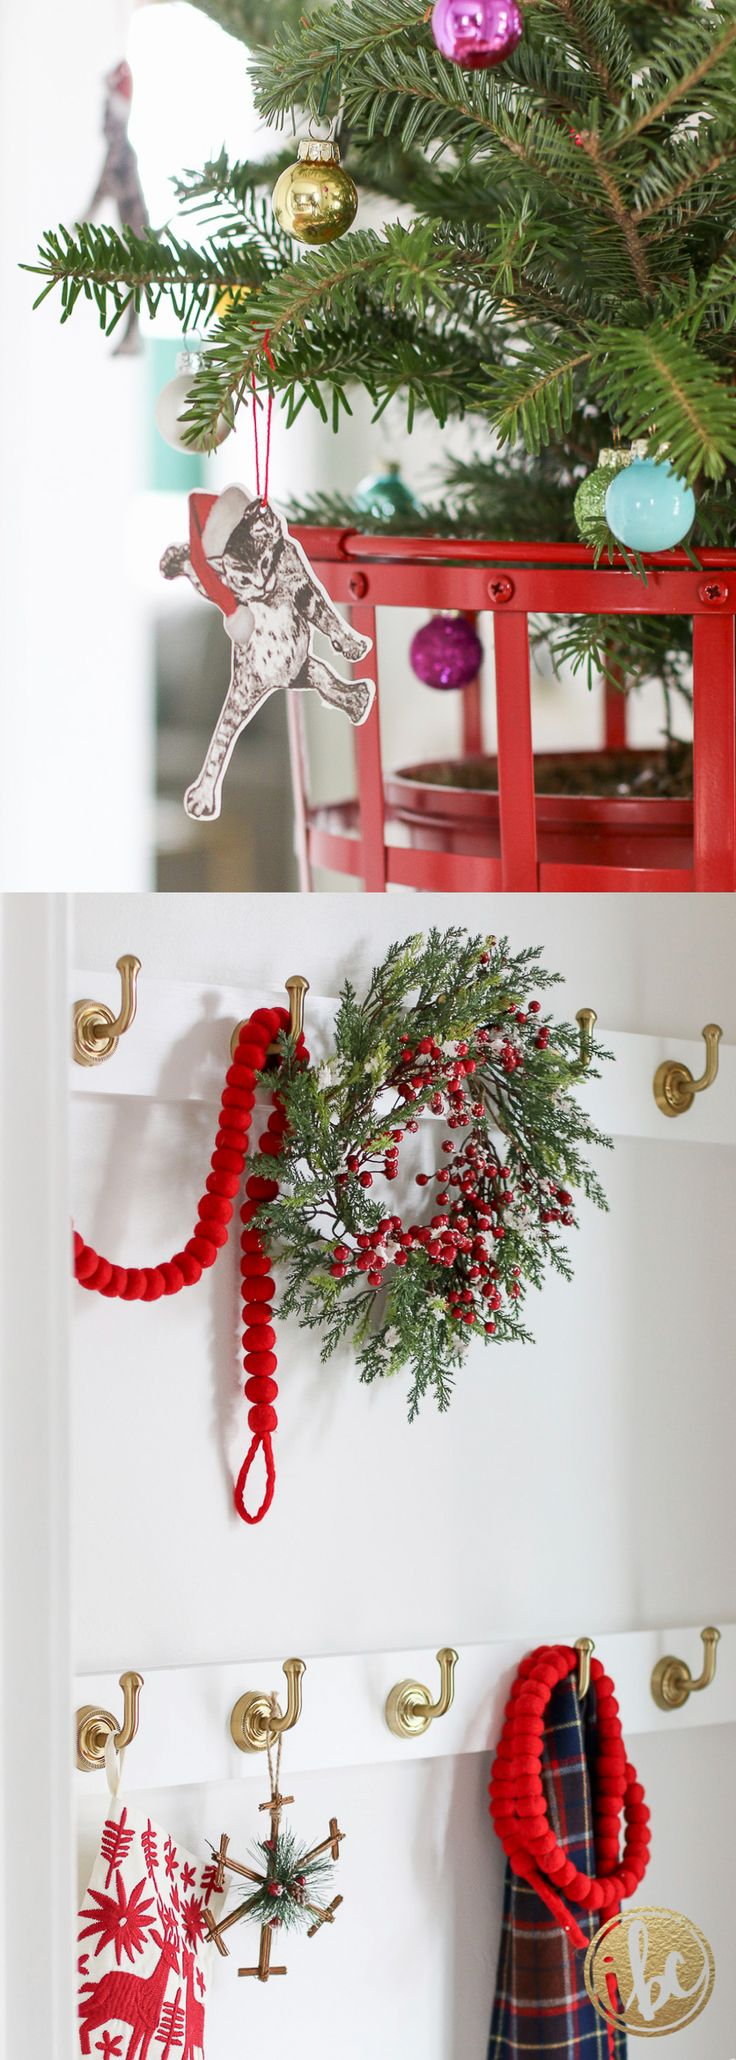 Christmas Holiday Home Decor Ideas. Unique And Fun Ways To Decorate For  Christmas.